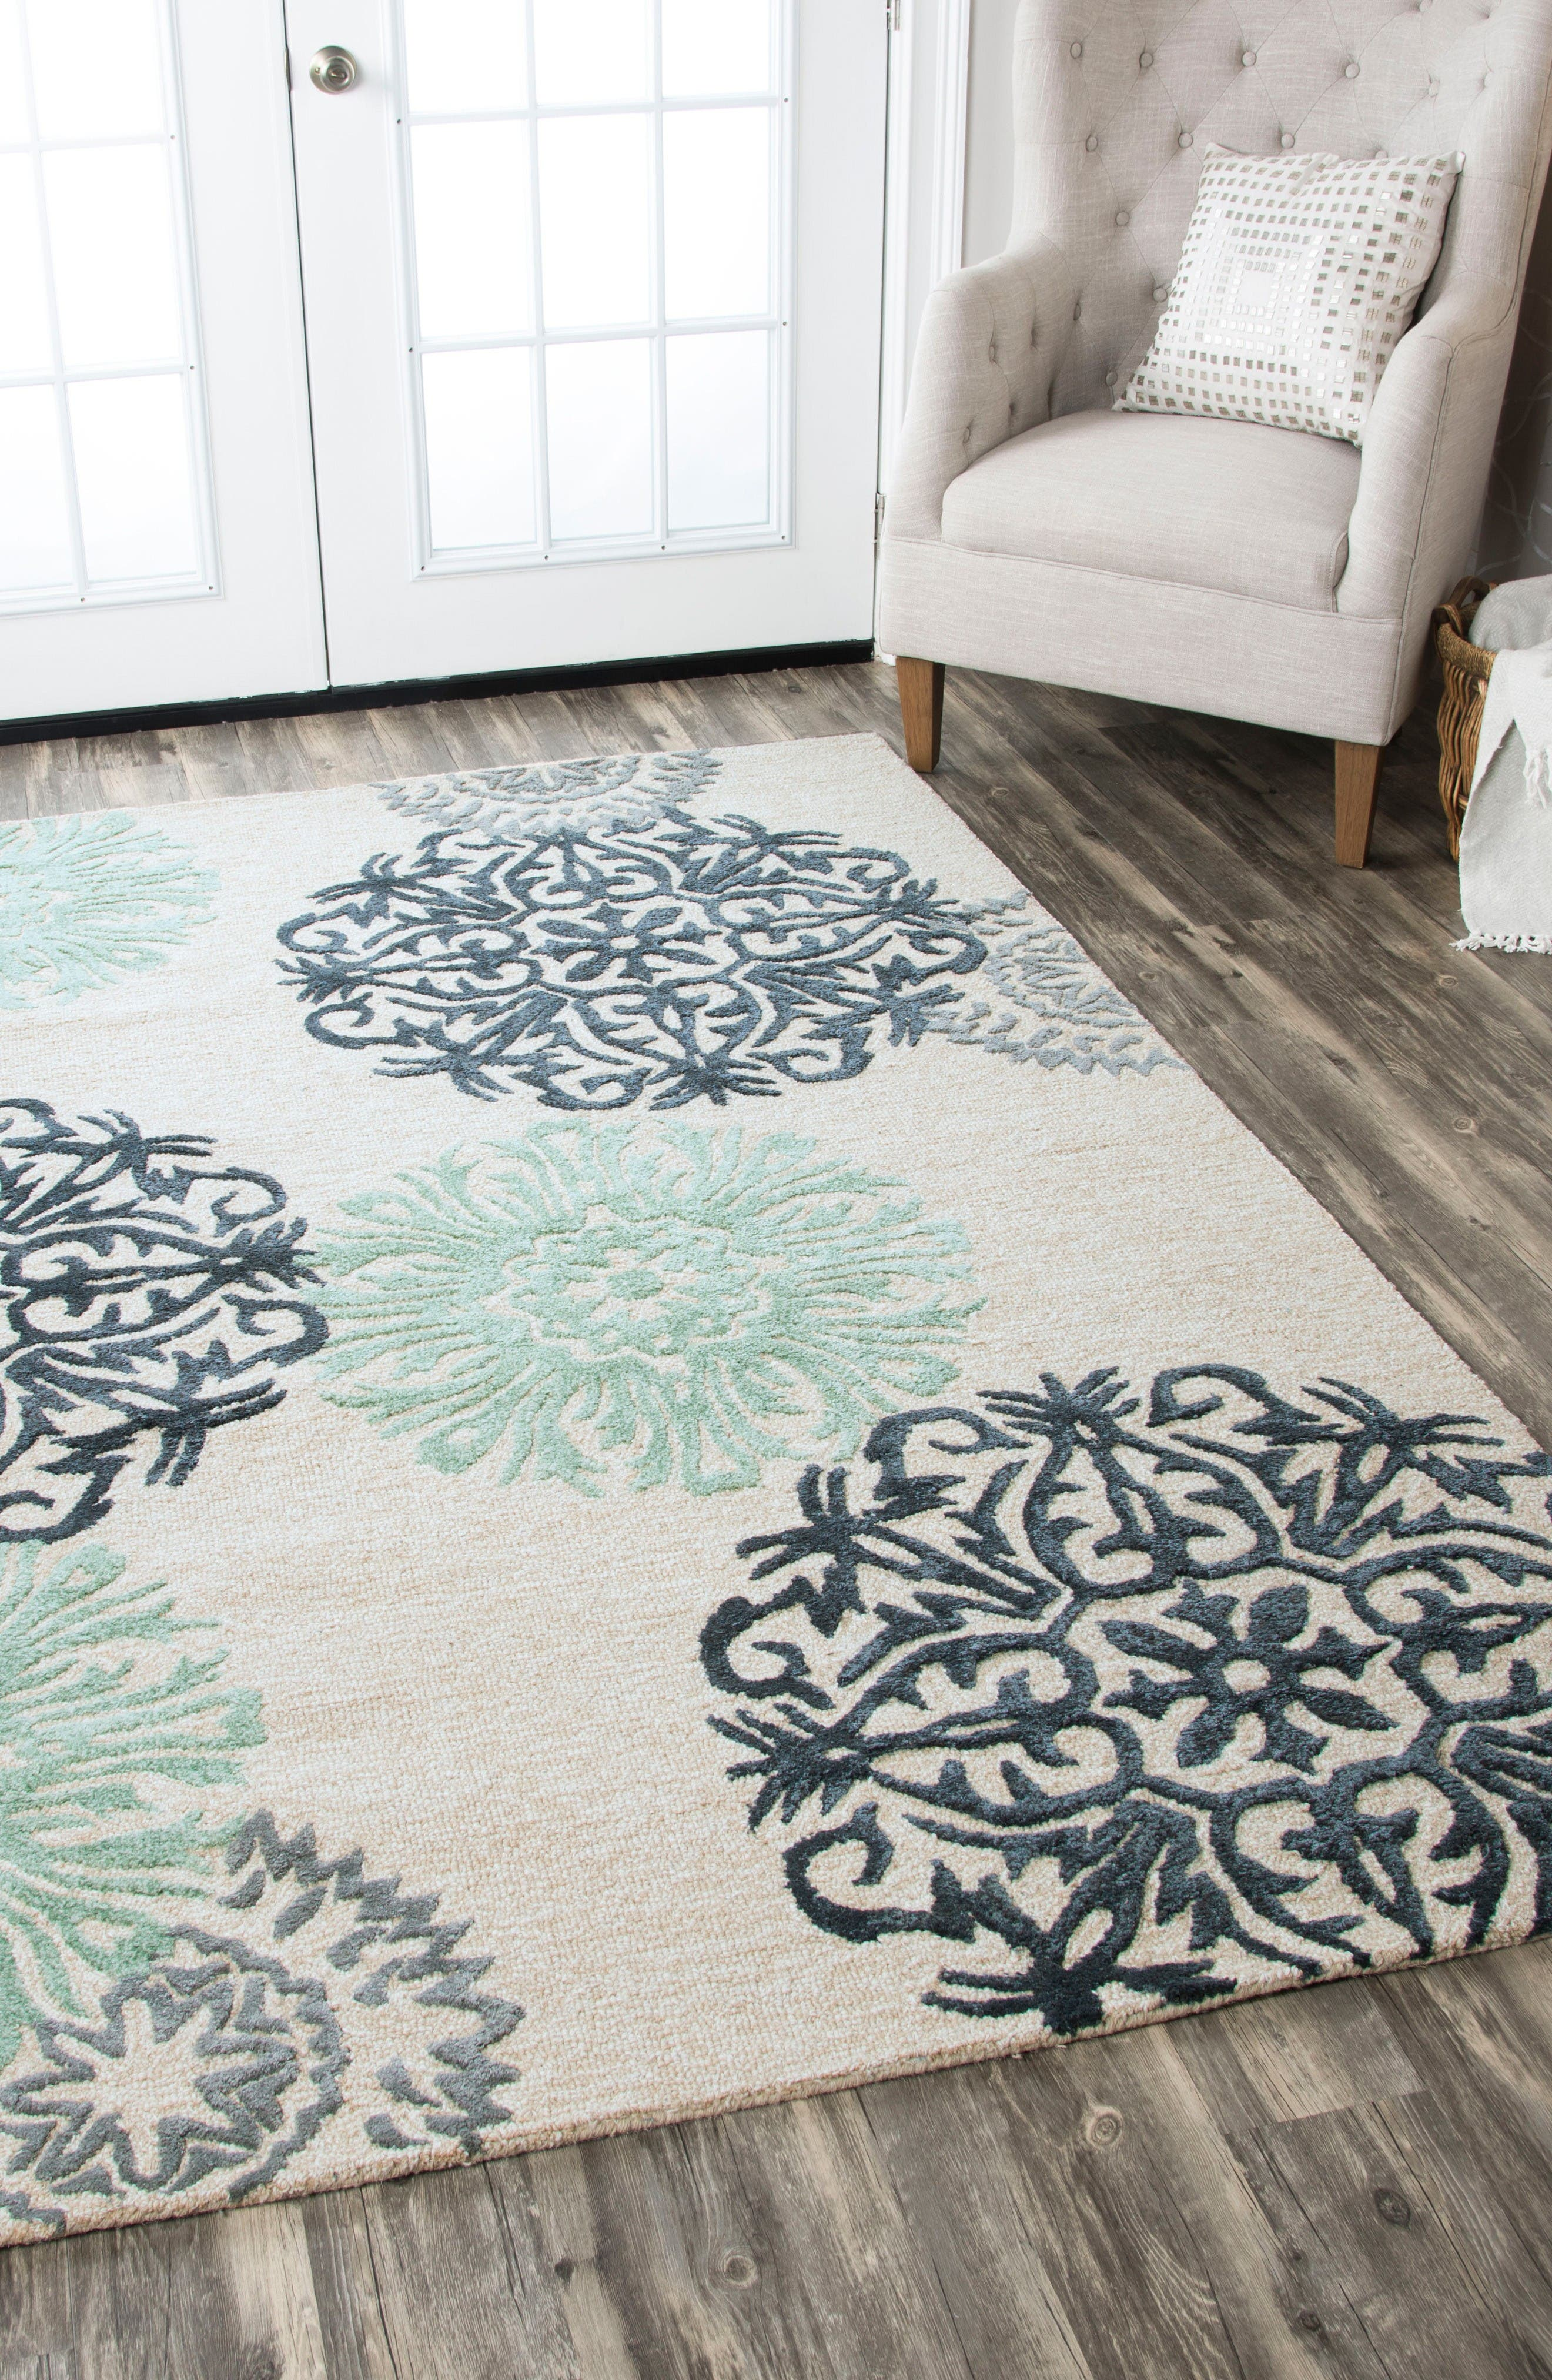 'Eden Harbor' Hand Tufted Wool Area Rug,                             Alternate thumbnail 4, color,                             Navy/ Aqua/ Grey